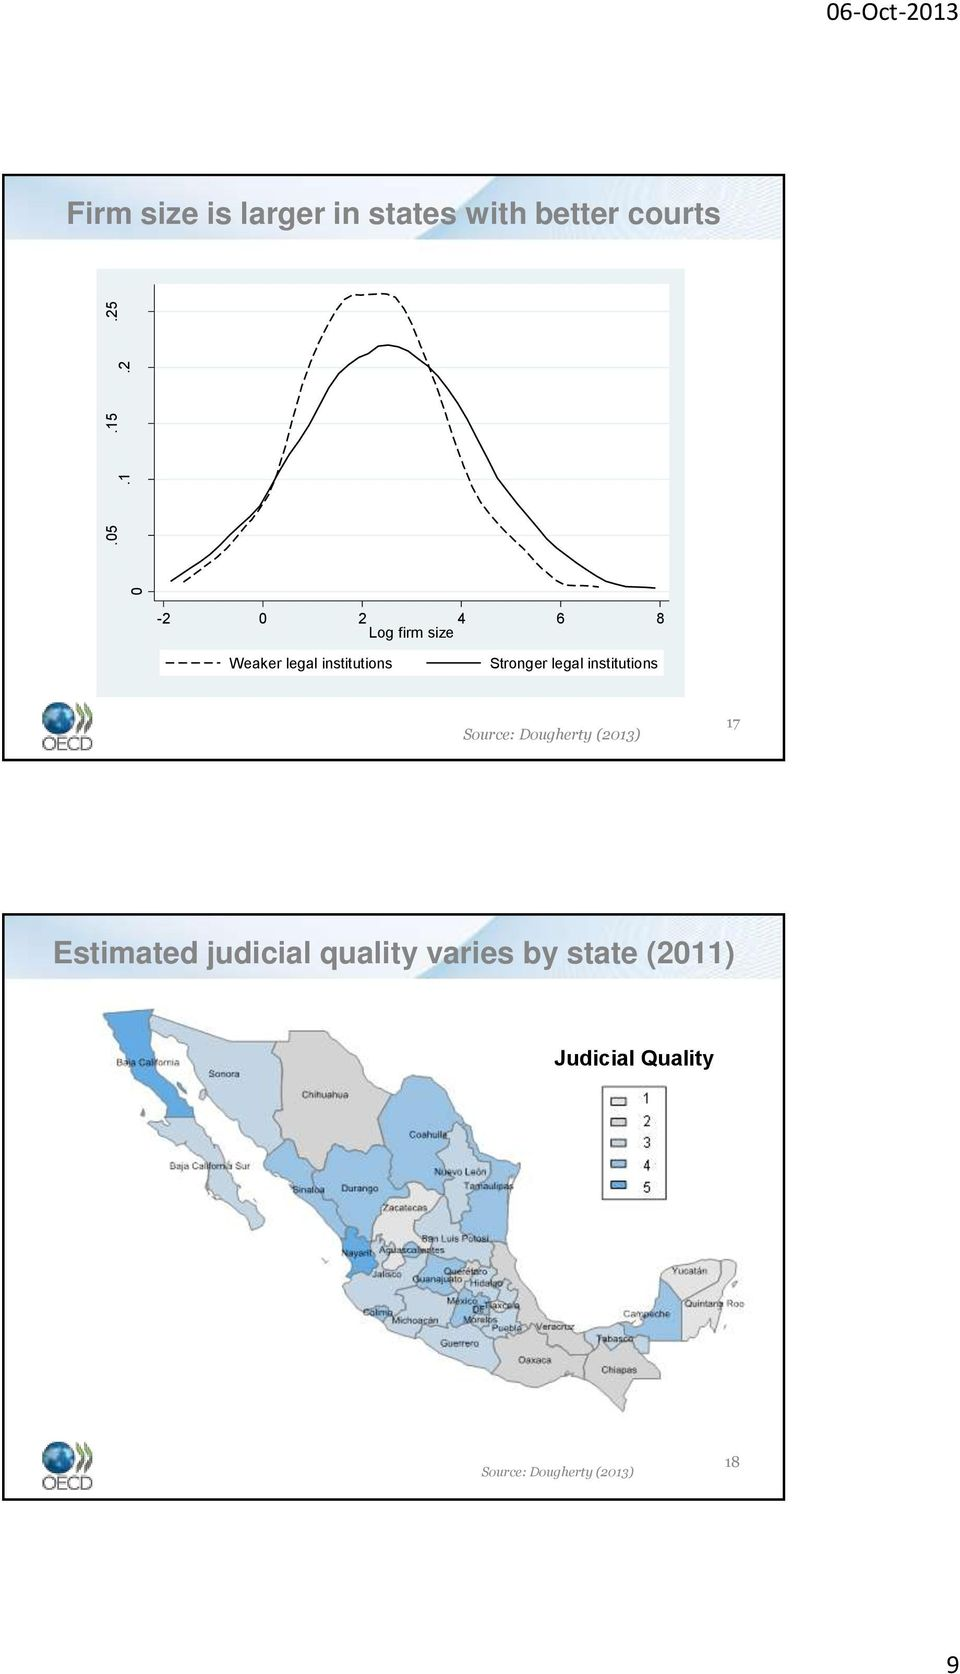 1 0 06-Oct-2013 Firm size is larger in states with better courts -2 0 2